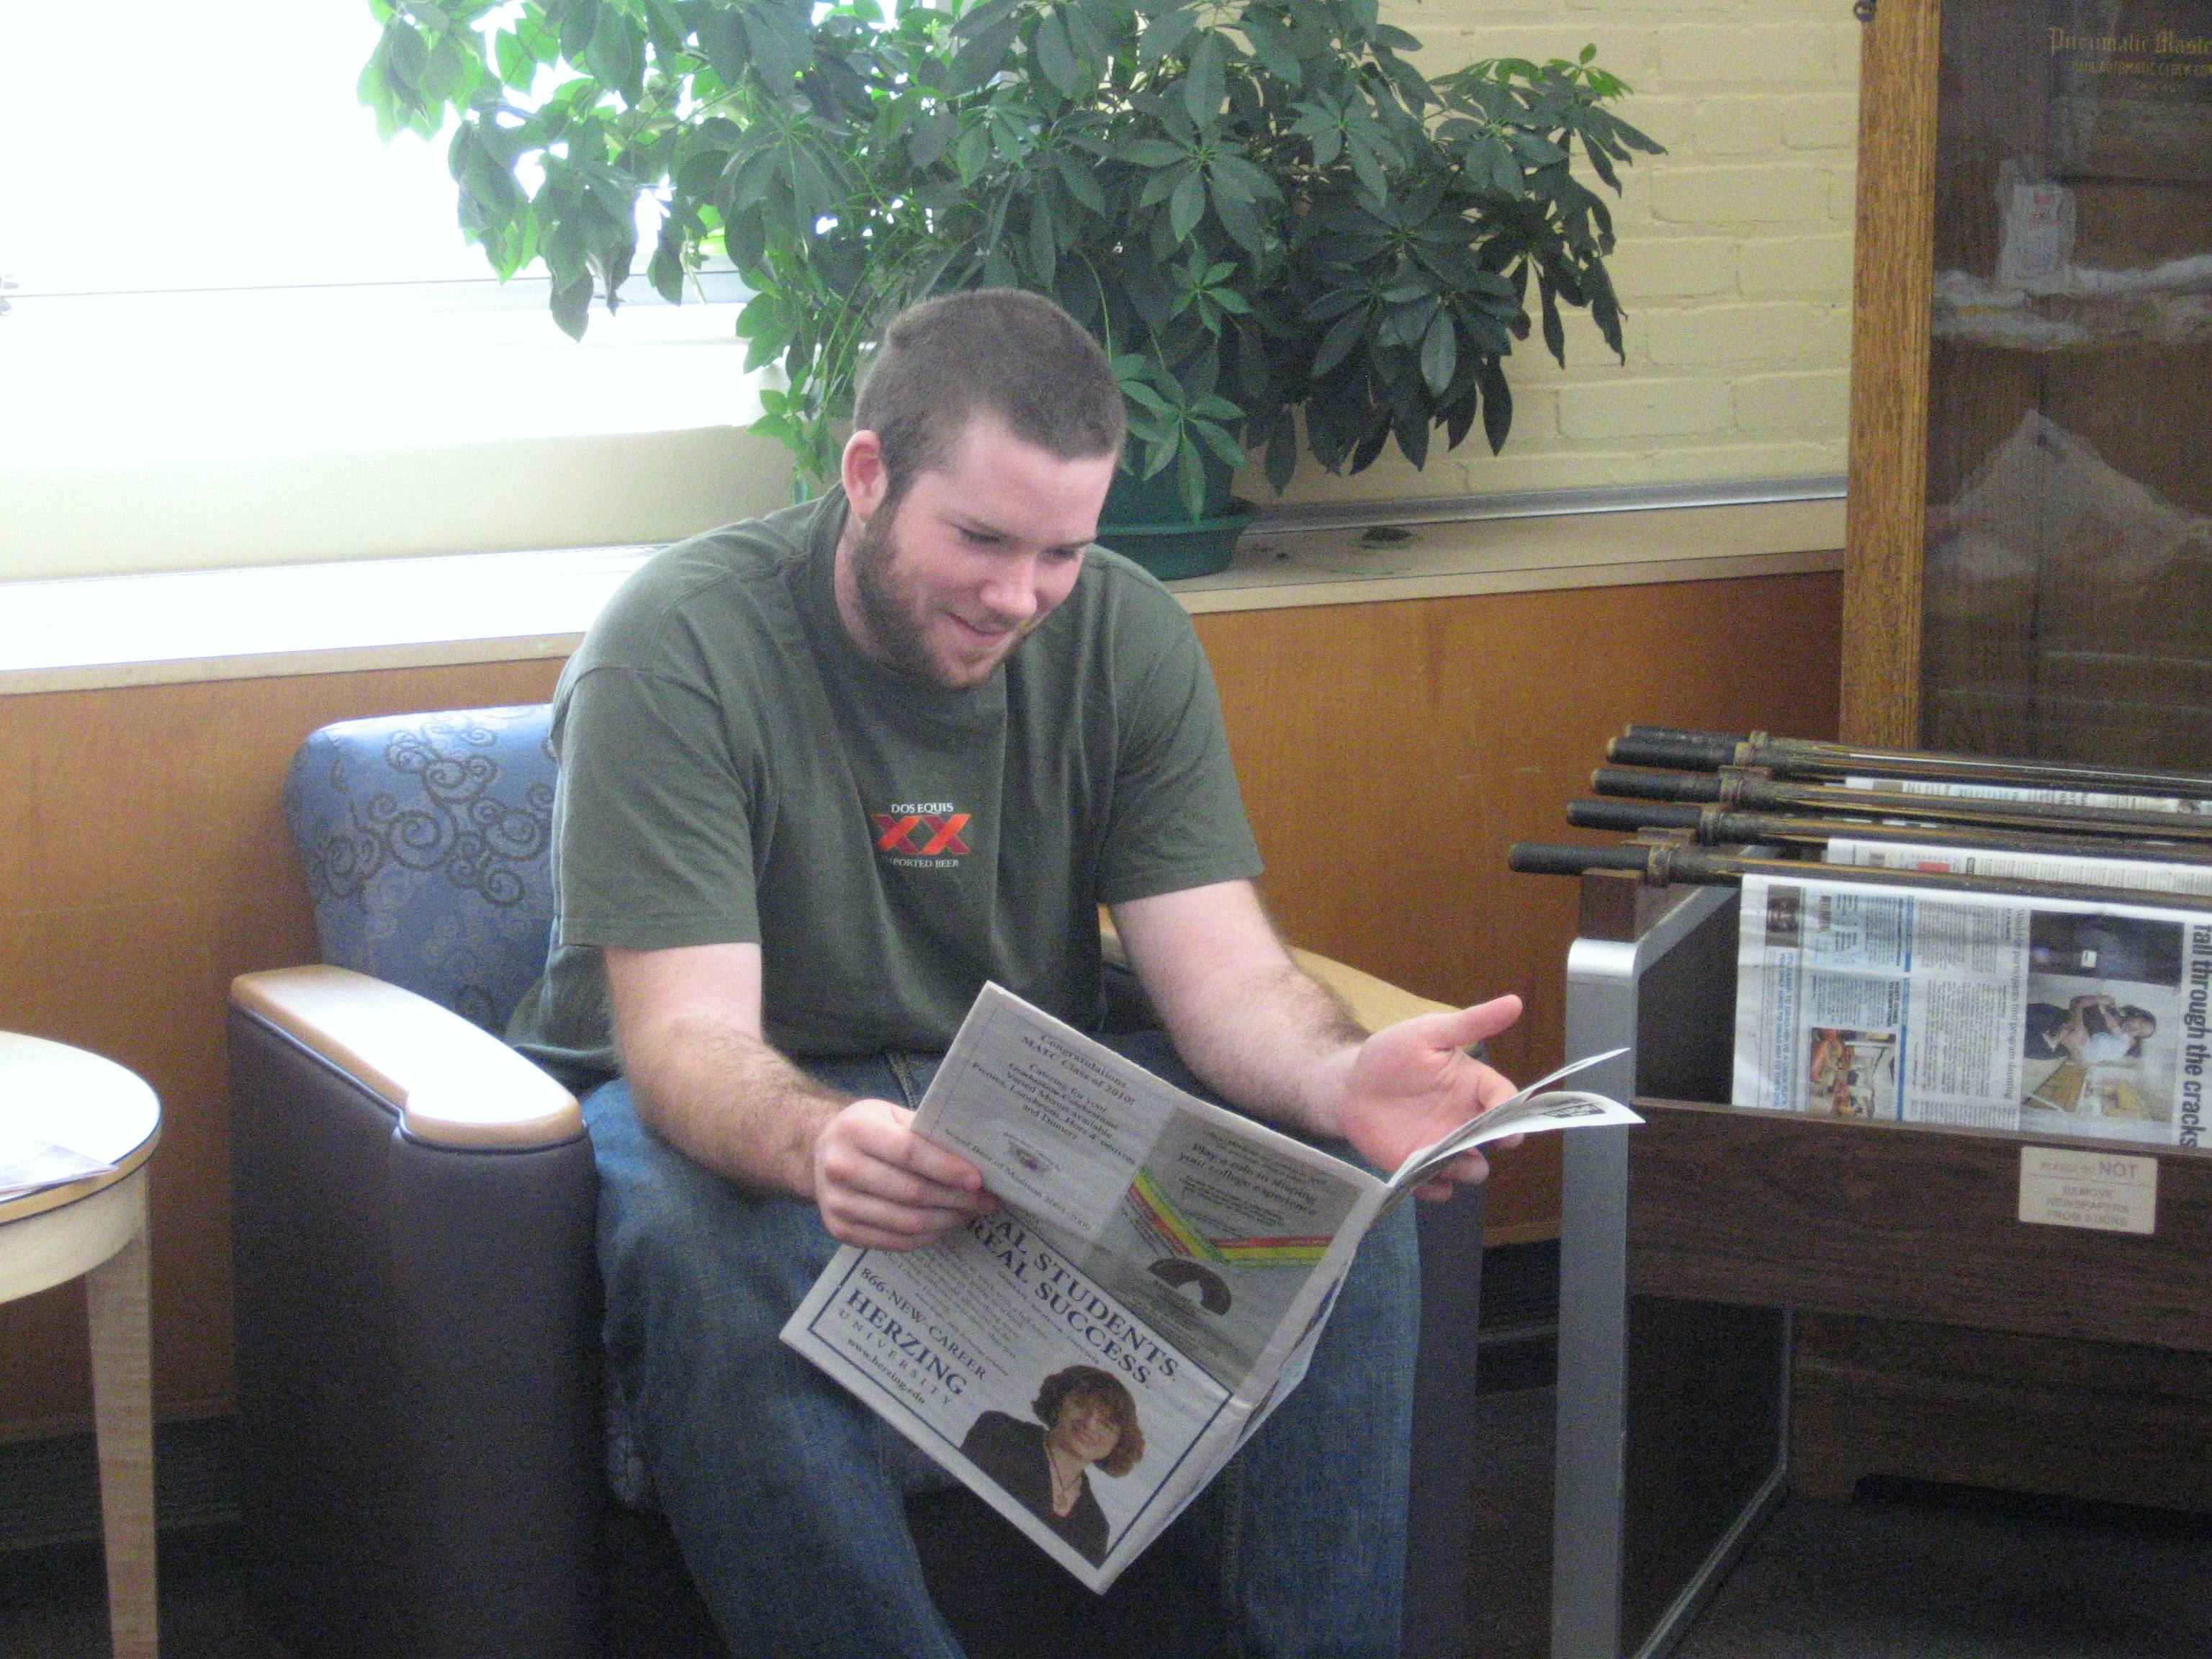 Student reading a newspaper